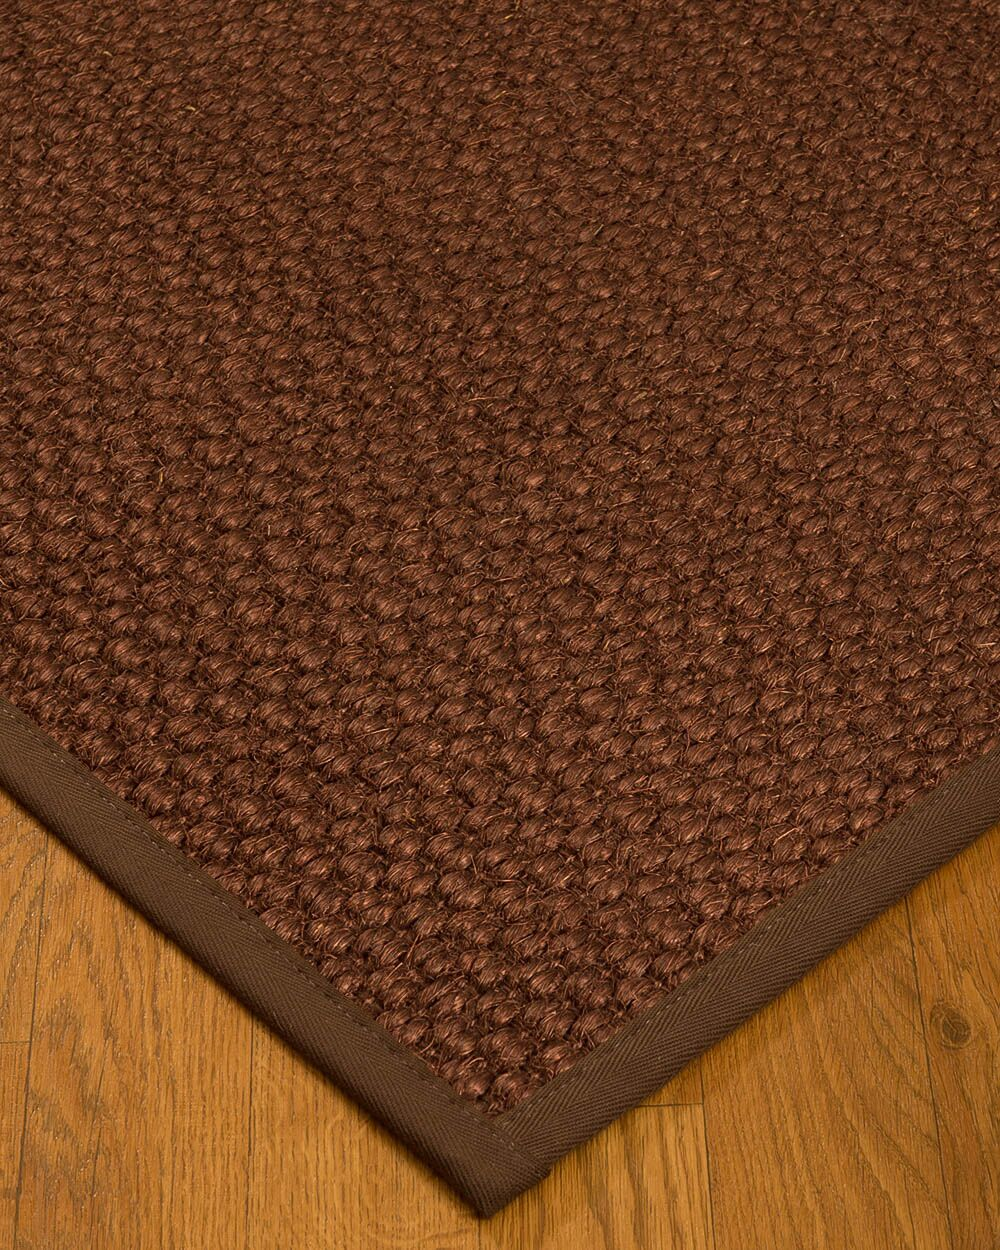 Kerrick Border Hand-Woven Brown Area Rug Rug Pad Included: No, Rug Size: Runner 2'6